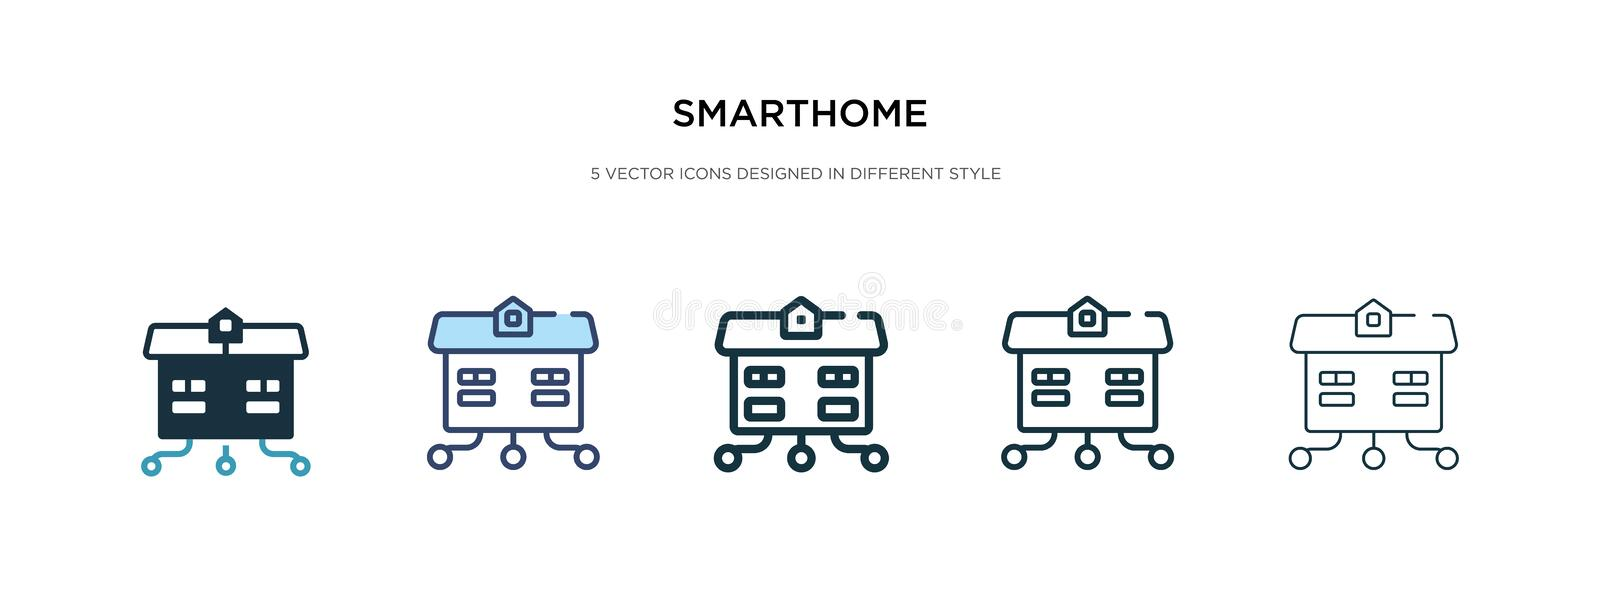 Smarthome icon in different style vector illustration. two colored and black smarthome vector icons designed in filled, outline, stock illustration